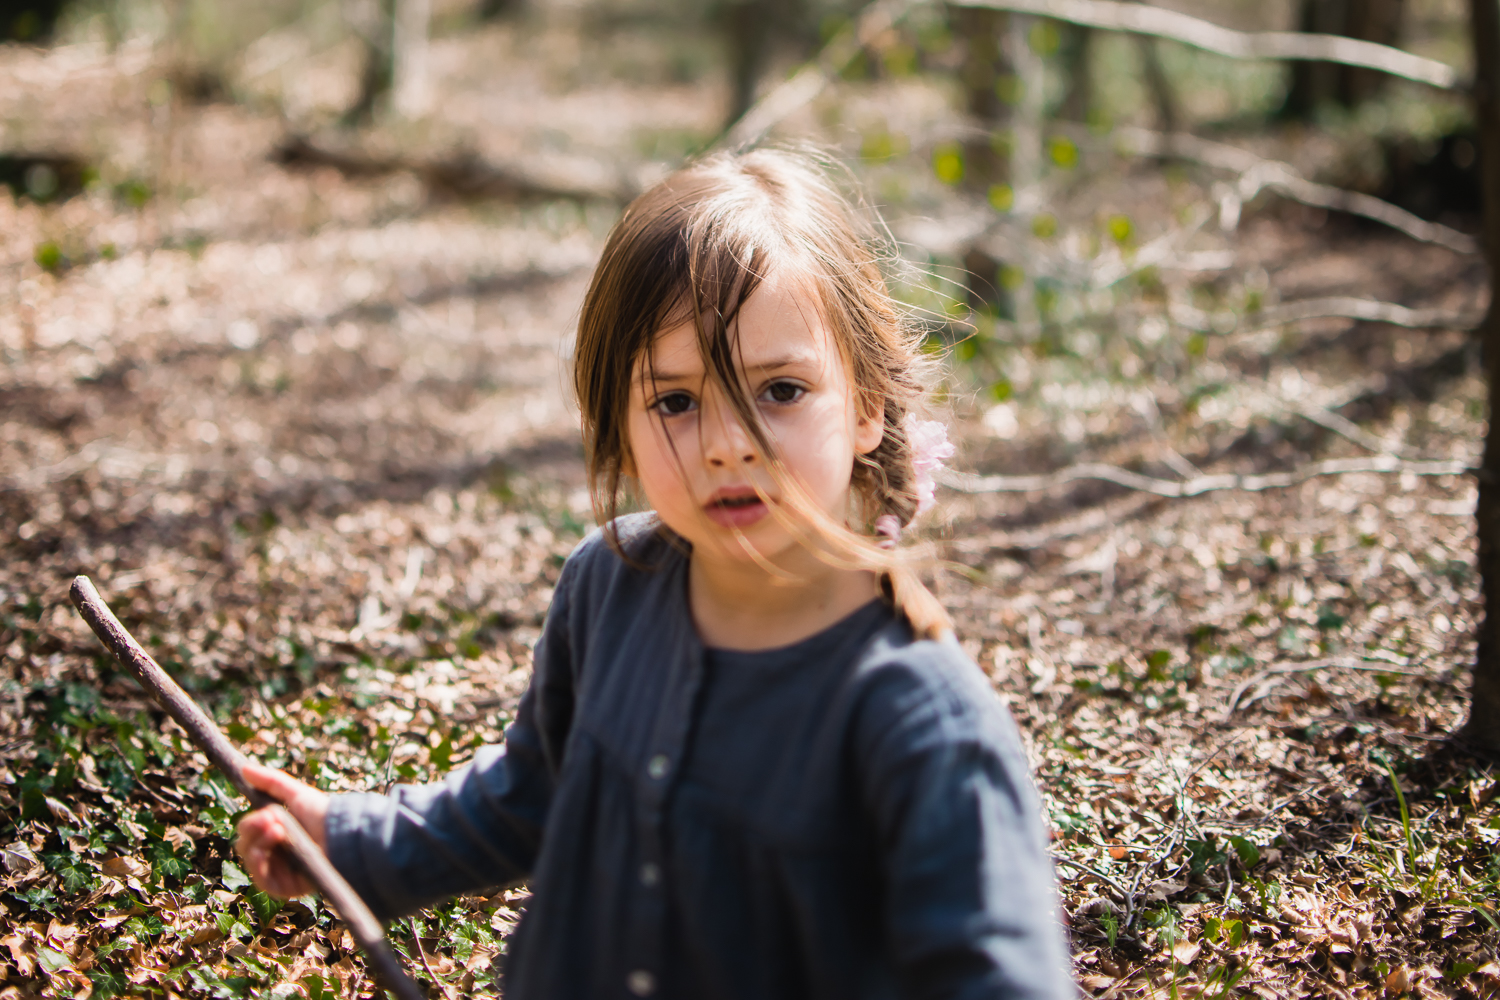 Freelensing photo of a little girl with hair blowing across her face